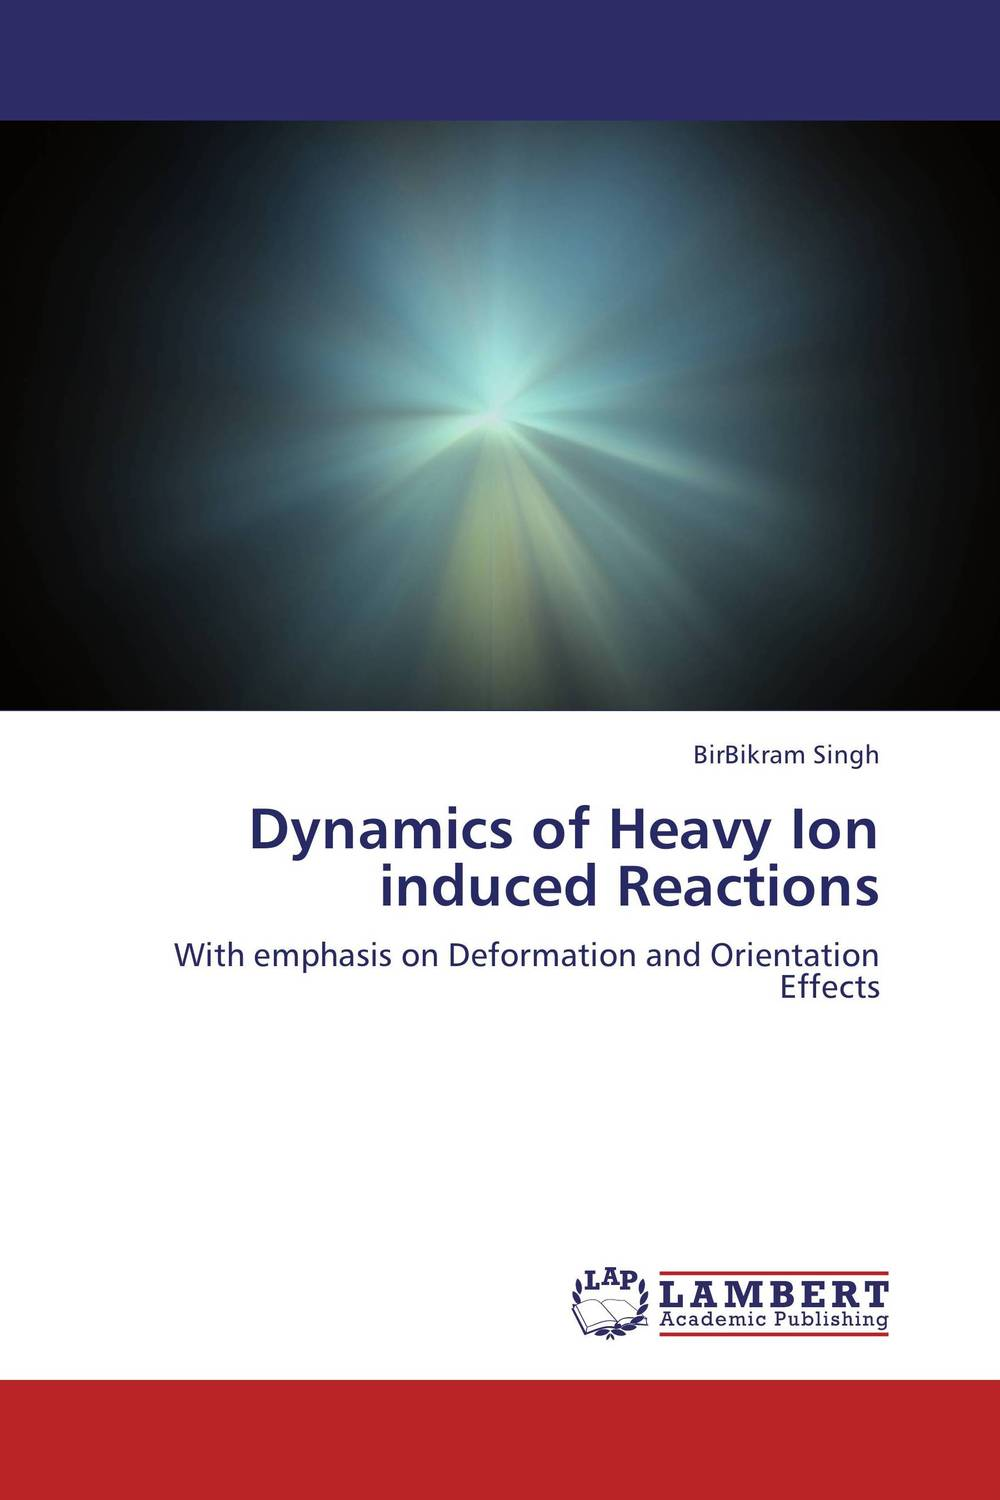 Dynamics of Heavy Ion induced Reactions